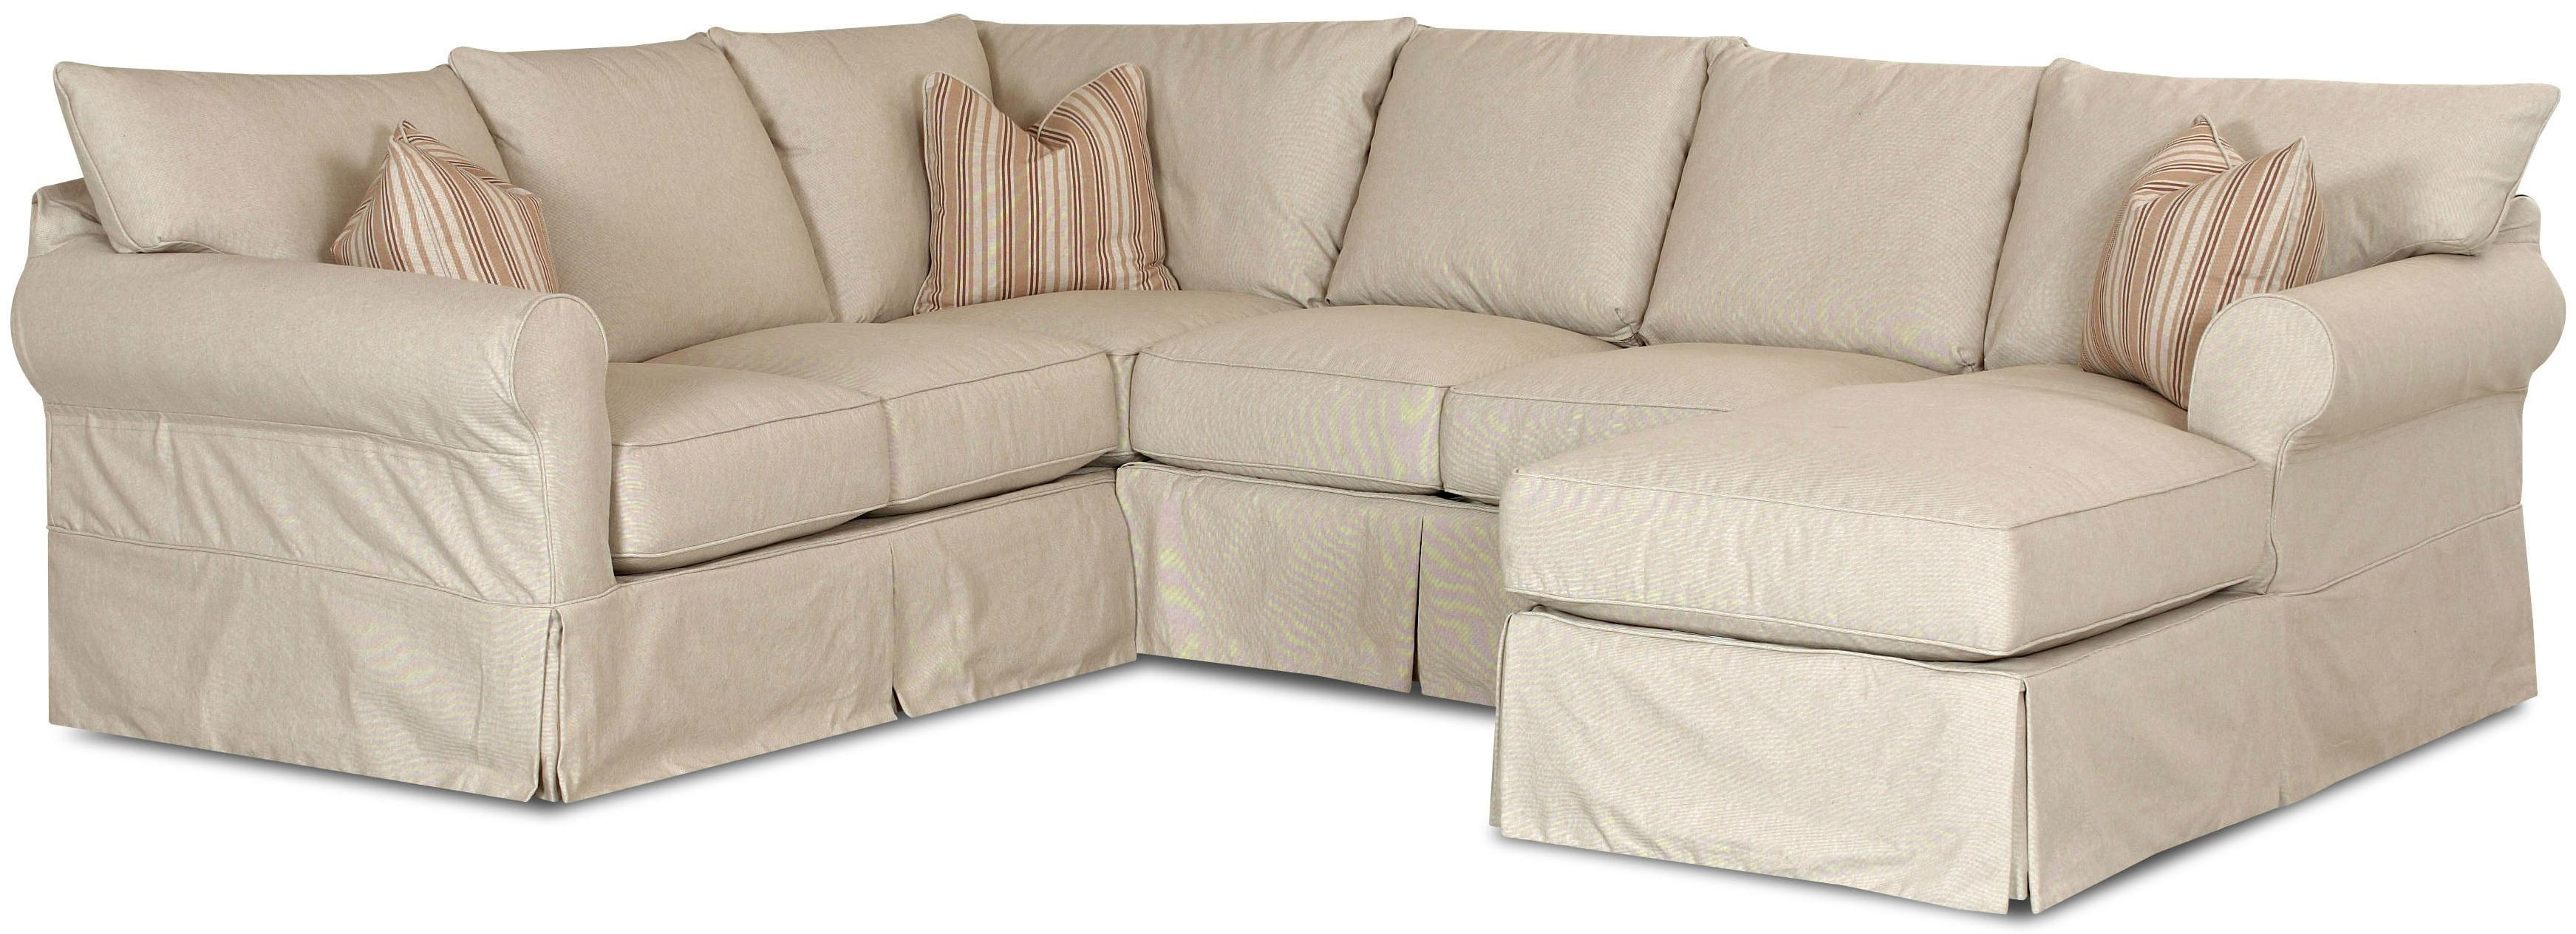 Sofas Center : Roll Arm Slipcovered Sofa With Within Slipcovered Chaises (View 20 of 20)